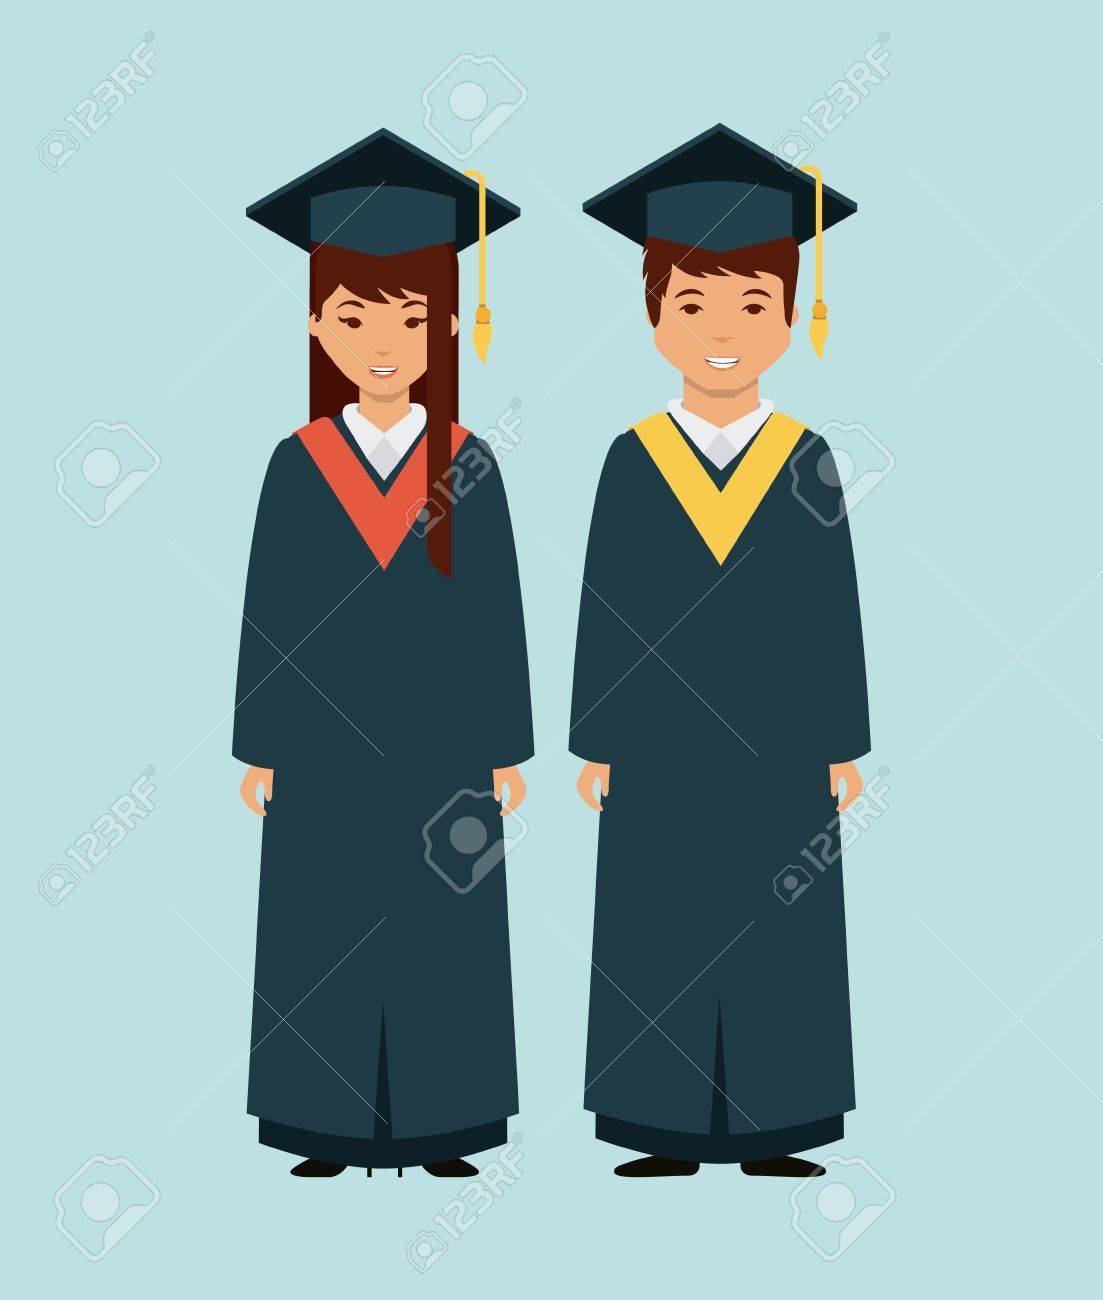 Cartoon Man And Woman Wearing A Cap And Gown Of Graduation Over ...